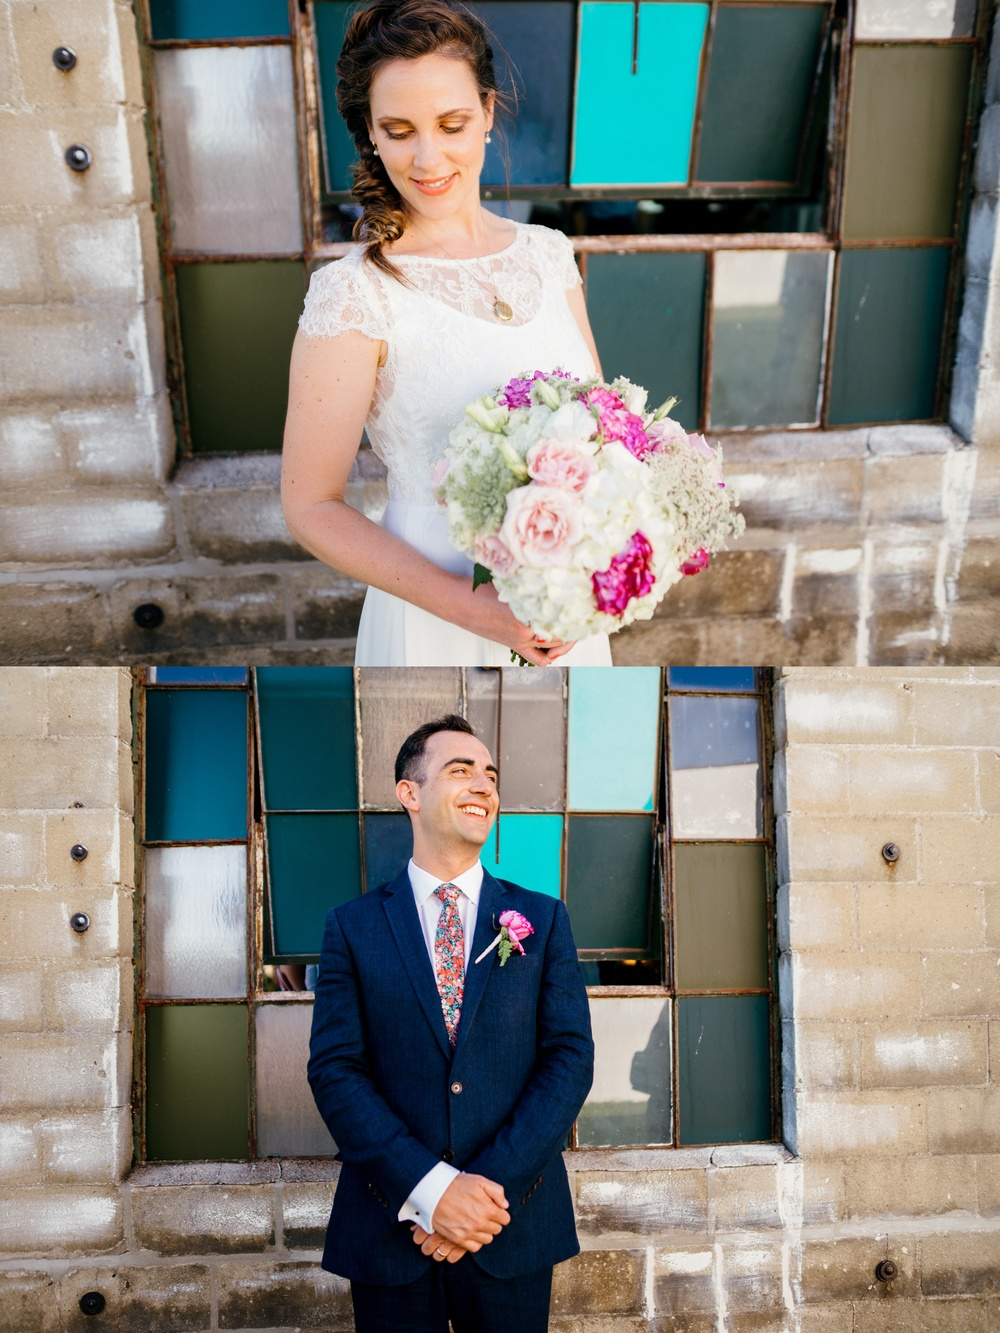 Shelby Chari Photography | South Bend Portrait Photographer | Sundance Studios Bride and Groom